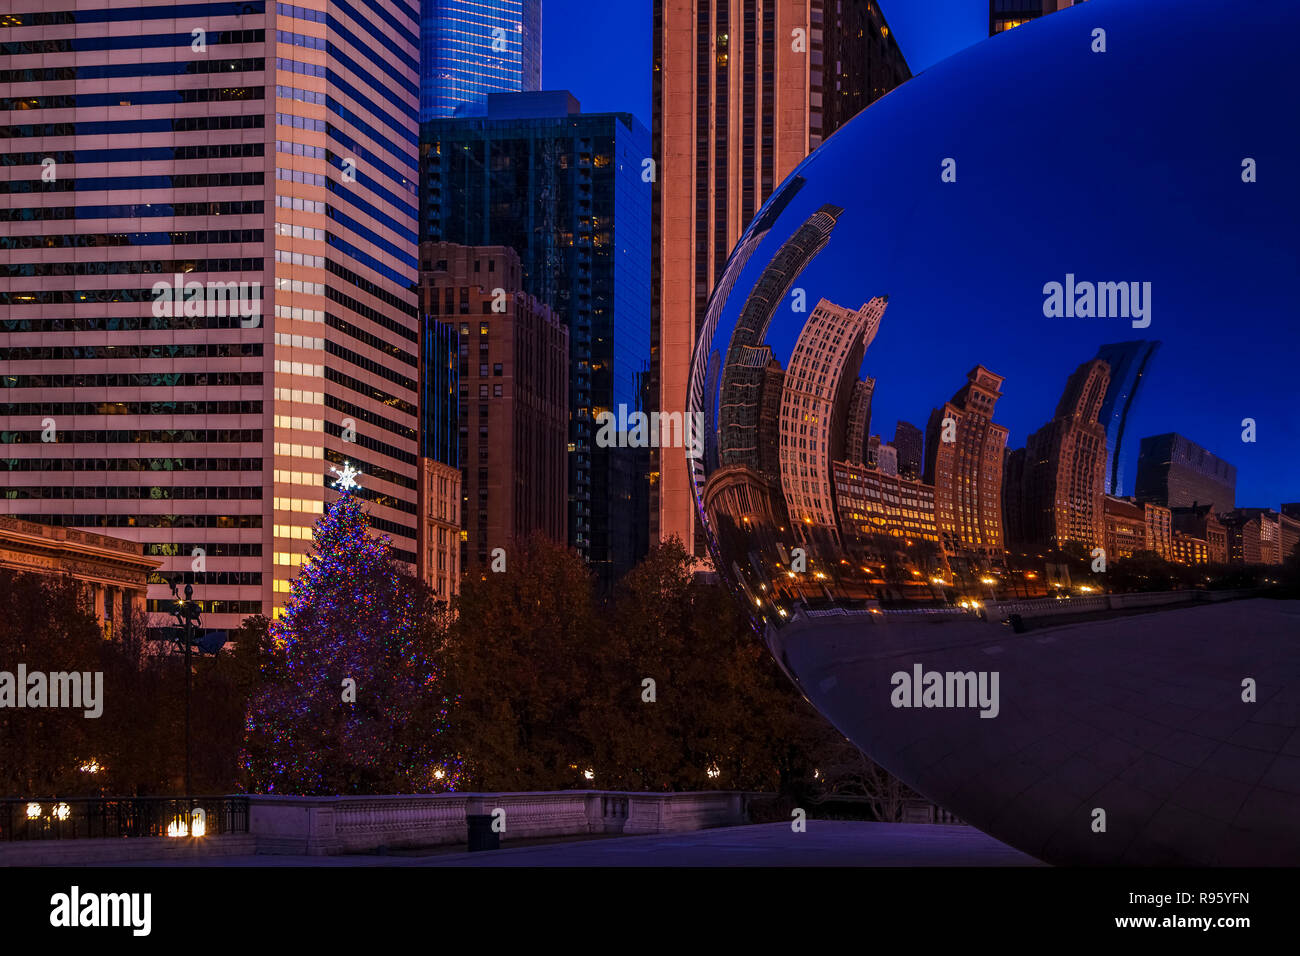 Christmas Tree Downtown Chicago.Chicago Christmas Tree Stock Photos Chicago Christmas Tree